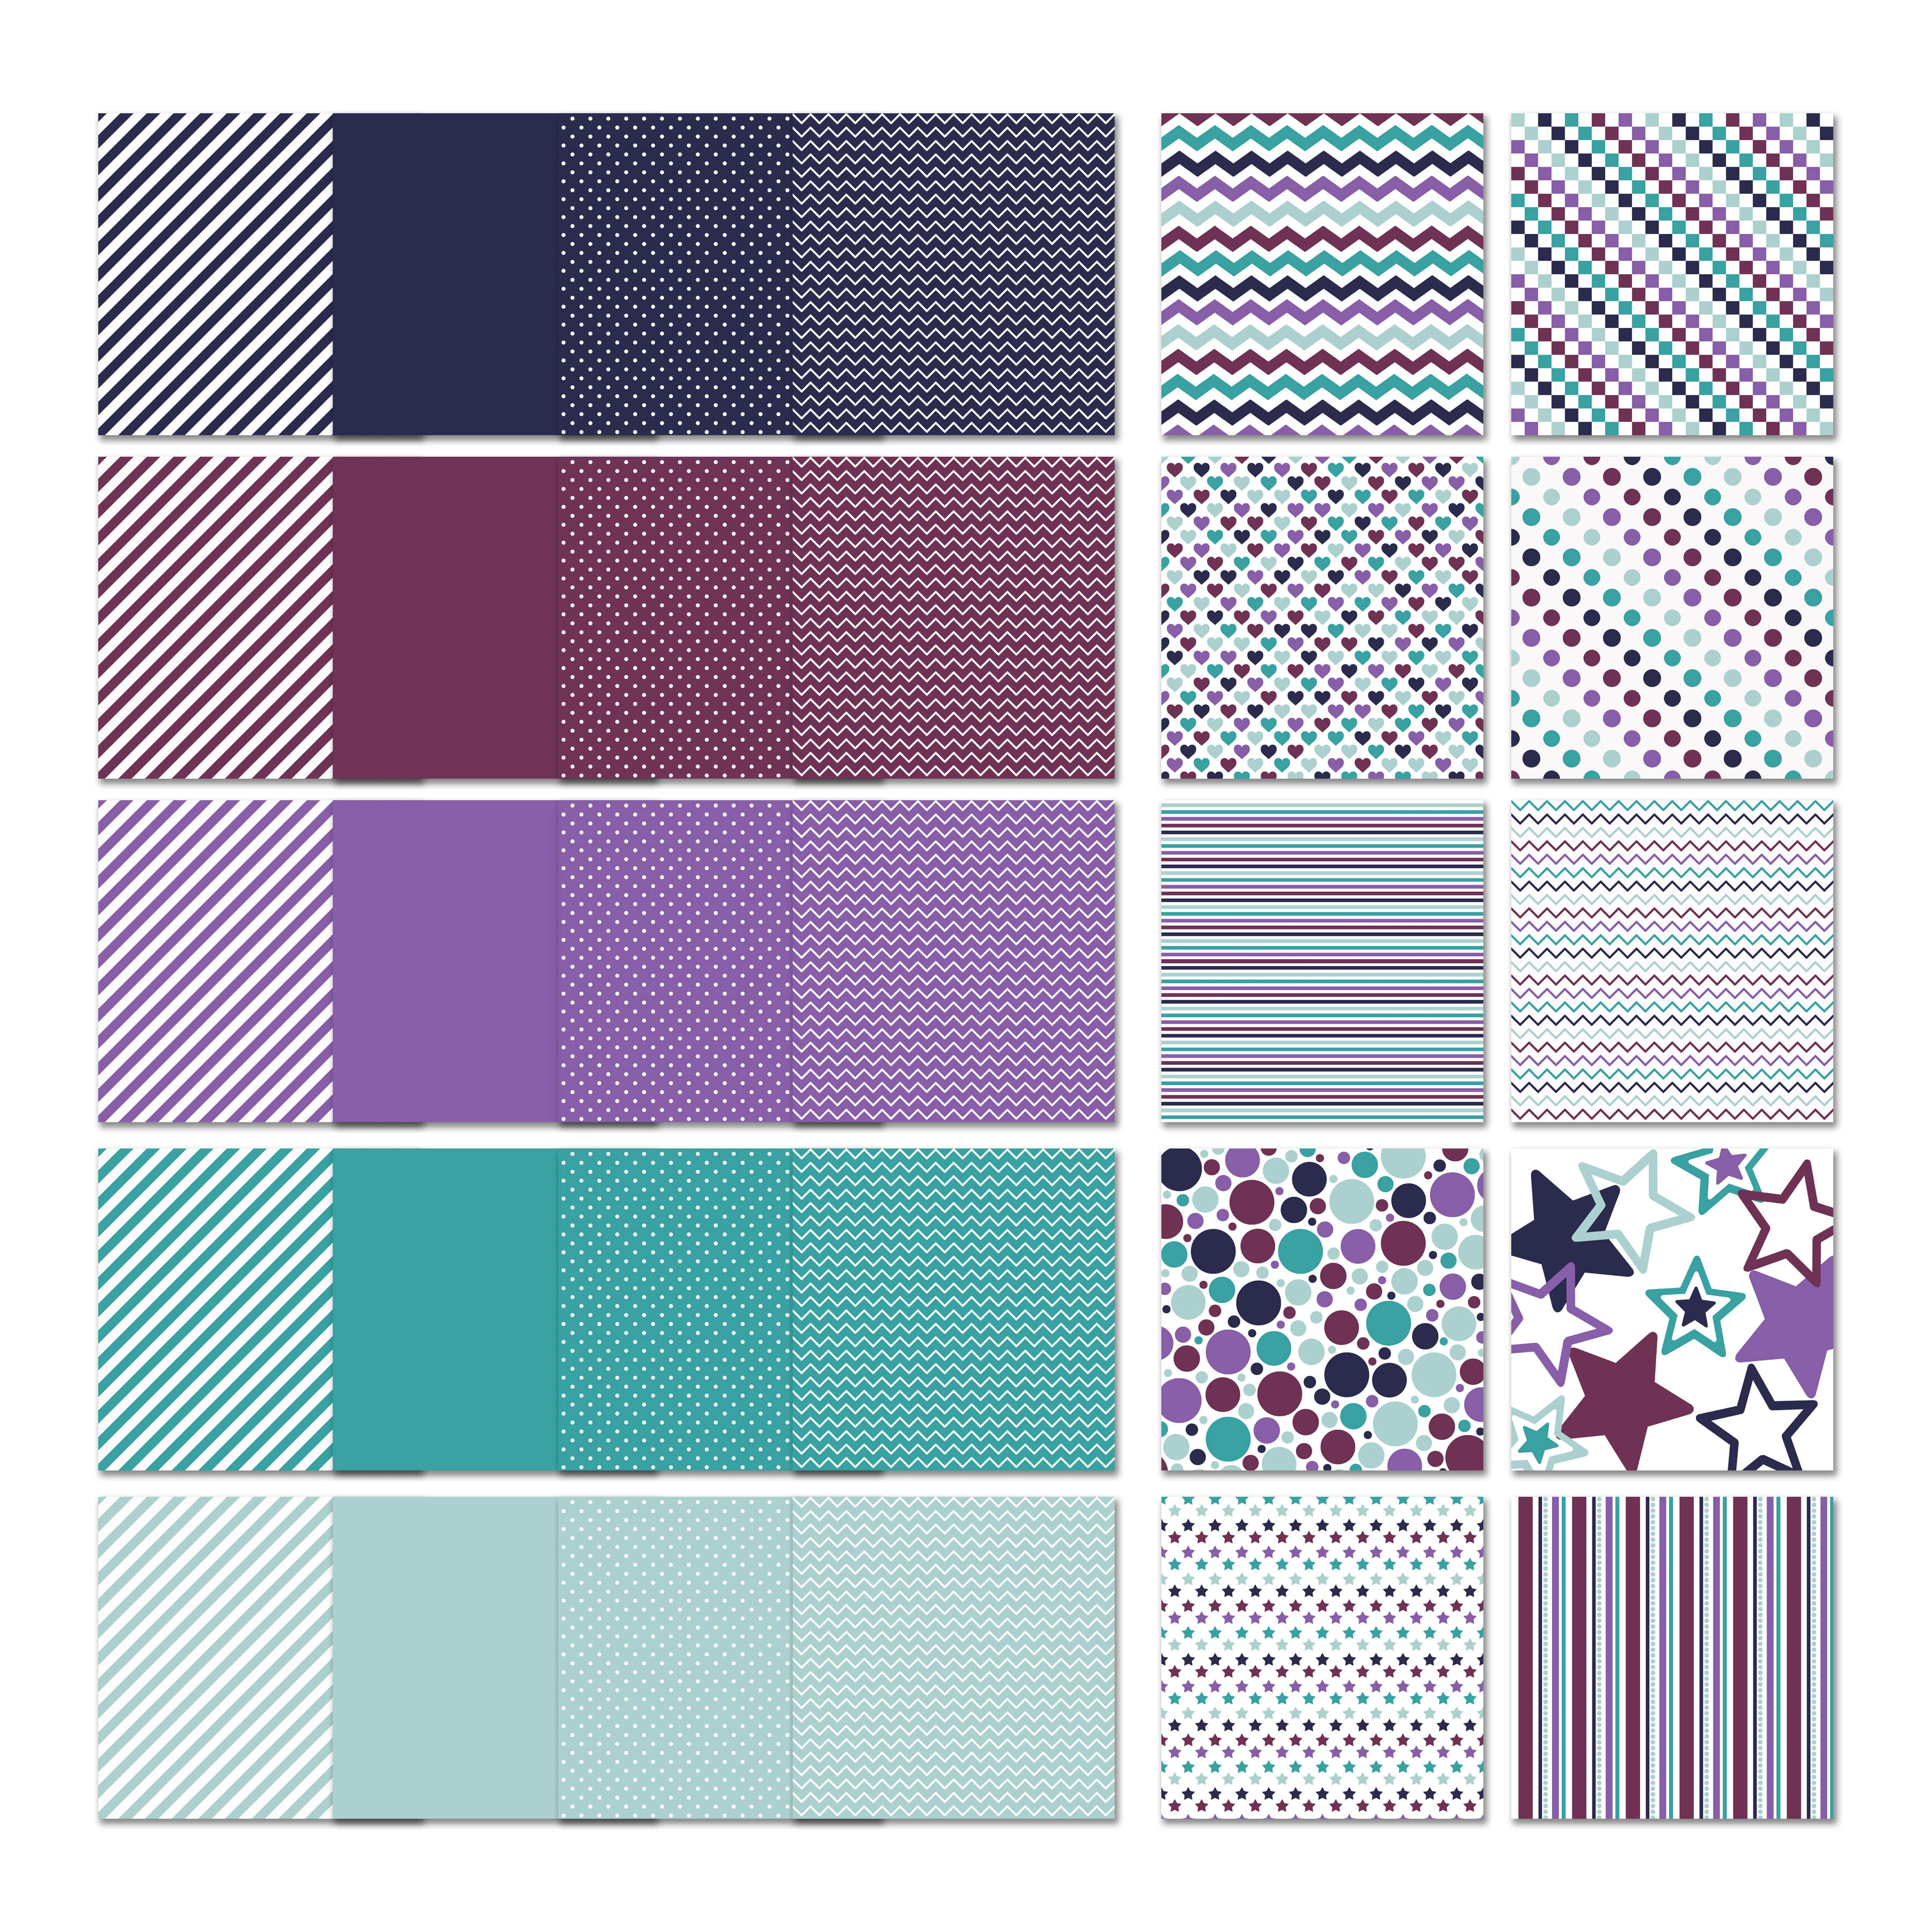 Print on Demand: Frozen Digital Papers Graphic Backgrounds By oldmarketdesigns - Image 2